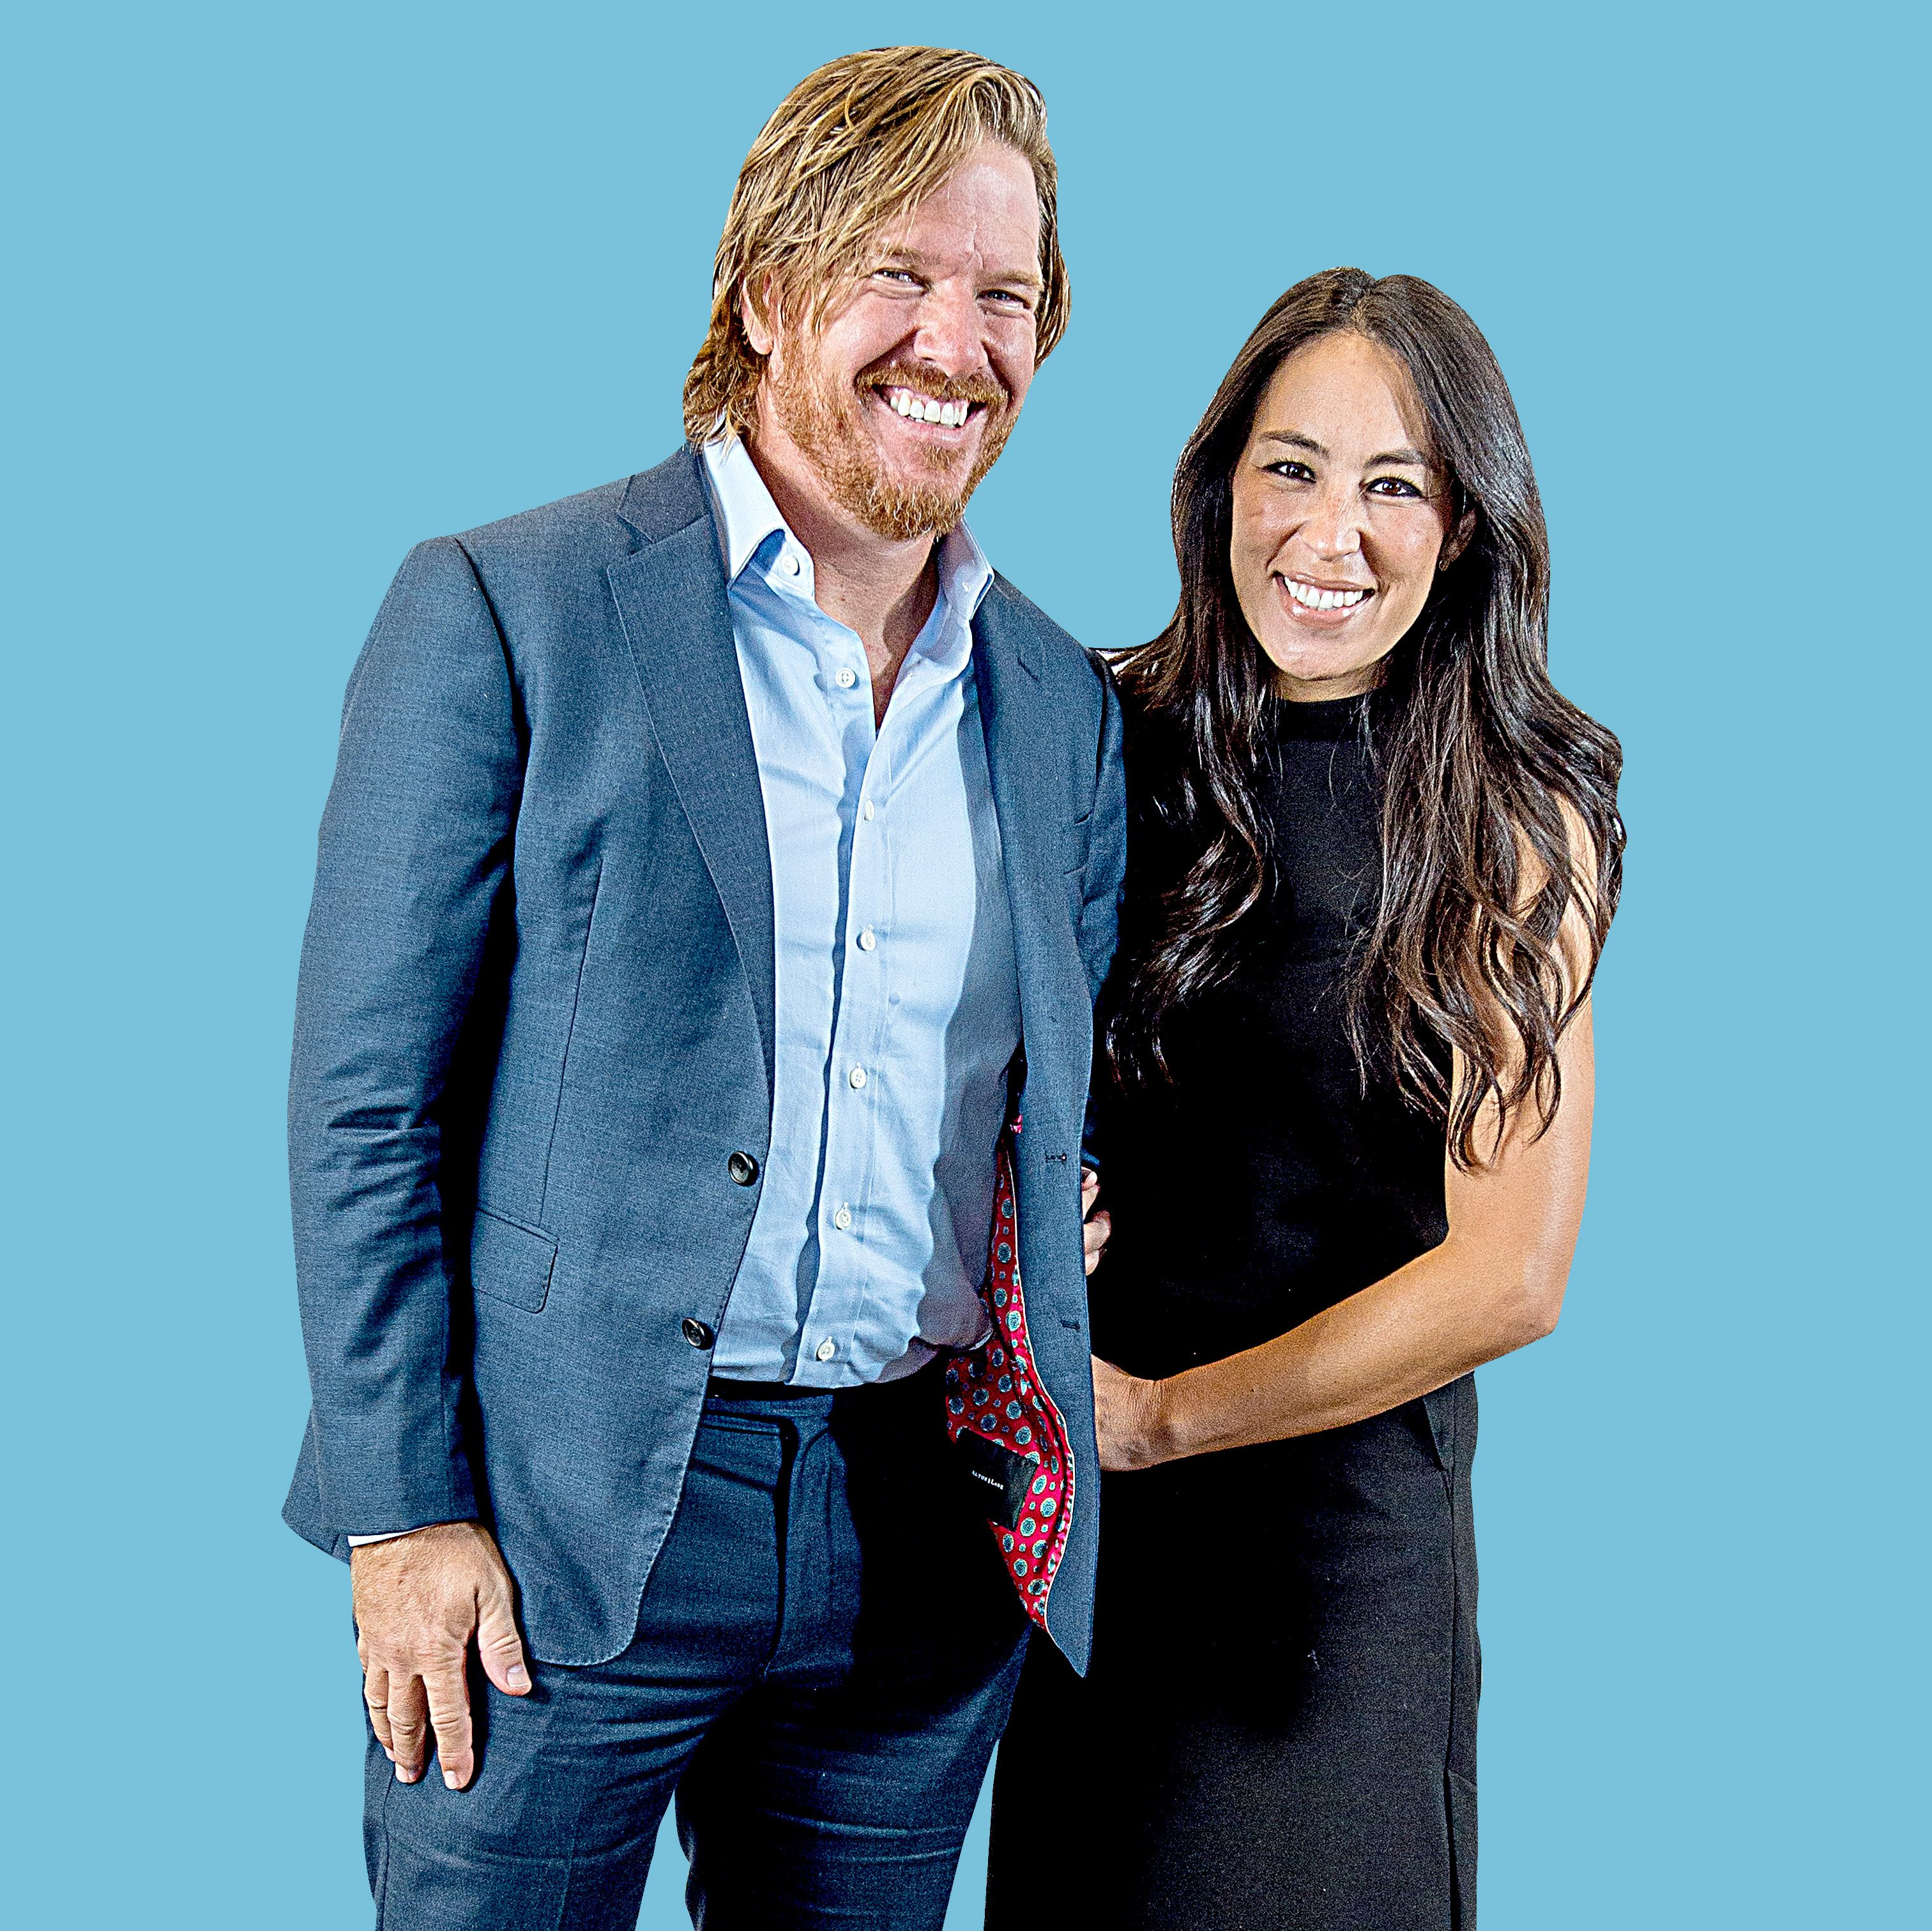 Chips Et Joanna Gaines chip and joanna gaines were afraid to leave hgtv's fixer upper